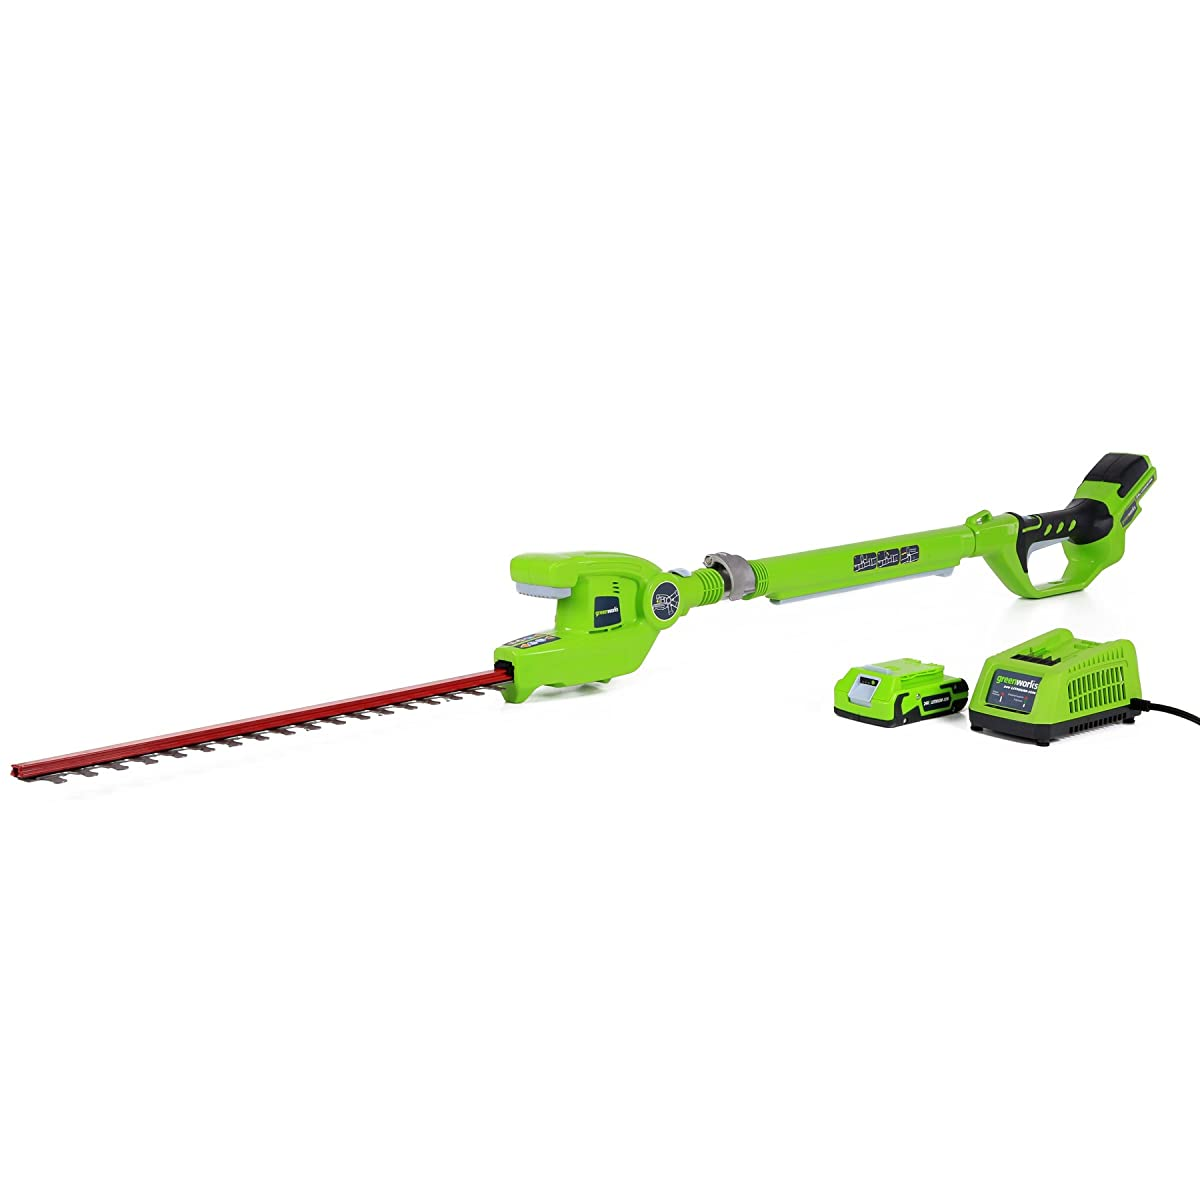 GreenWorks 22242 24V 20-Inch Cordless Pole Hedge Trimmer, 2Ah Battery and Charger Included